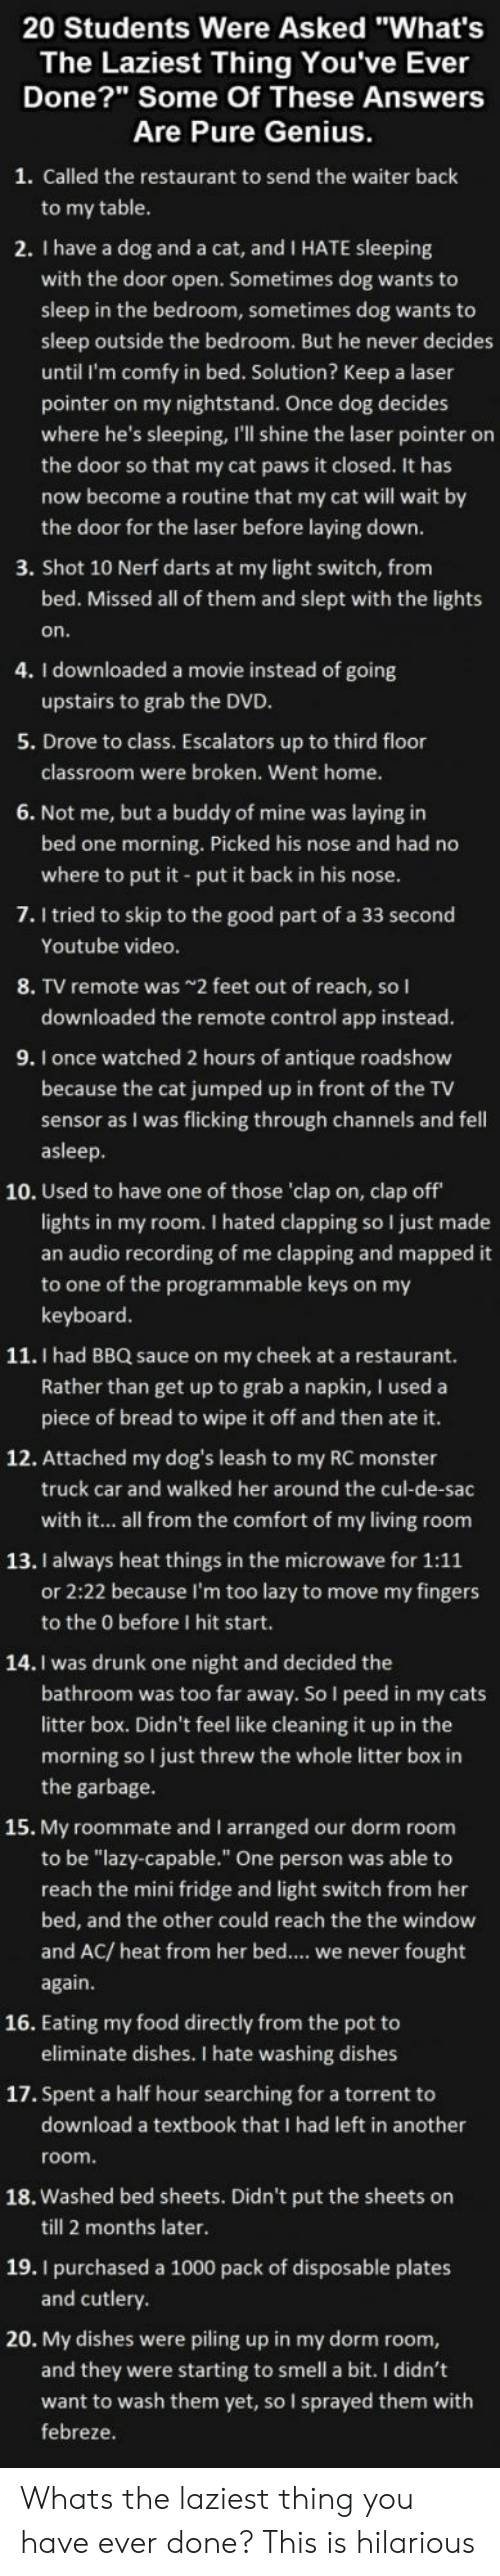 """Cats, Dogs, and Drunk: 20 Students Were Asked """"What's  The Laziest Thing You've Ever  Done? Some Of These Answers  Are Pure Genius  1. Called the restaurant to send the waiter back  to my table  2. I have a dog and a cat, and I HATE sleeping  with the door open. Sometimes dog wants to  sleep in the bedroom, sometimes dog wants to  sleep outside the bedroom. But he never decides  until I'm comfy in bed. Solution? Keep a laser  pointer on my nightstand. Once dog decides  where he's sleeping, I'll shine the laser pointer on  the door so that my cat paws it closed. It has  now become a routine that my cat will wait by  the door for the laser before laying down  3. Shot 10 Nerf darts at my light switch, from  bed. Missed all of them and slept with the lights  on  4. I downloaded a movie instead of going  5. Drove to class. Escalators up to third floor  6. Not me, but a buddy of mine was laying in  upstairs to grab the DVD  classroom were broken. Went home.  bed one morning. Picked his nose and had no  where to put it put it back in his nose  7. I tried to skip to the good part of a 33 second  Youtube video  8. TV remote was2 feet out of reach, so l  downloaded the remote control app instead.  9. I once watched 2 hours of antique roadshow  because the cat jumped up in front of the TV  sensor as I was flicking through channels and fell  asleep  10. Used to have one of those 'clap on, clap off  lights in my room. I hated clapping so I just made  an audio recording of me clapping and mapped it  to one of the programmable keys on my  keyboard  11. I had BBQ sauce on my cheek at a restaurant.  Rather than get up to grab a napkin, I used a  piece of bread to wipe it off and then ate it  12. Attached my dog's leash to my RC monster  truck car and walked her around the cul-de-sac  with it... all from the comfort of my living room  13. I always heat things in the microwave for 1:11  or 2:22 because I'm too lazy to move my fingers  to the 0 before I hit start.  14. I was drunk one """